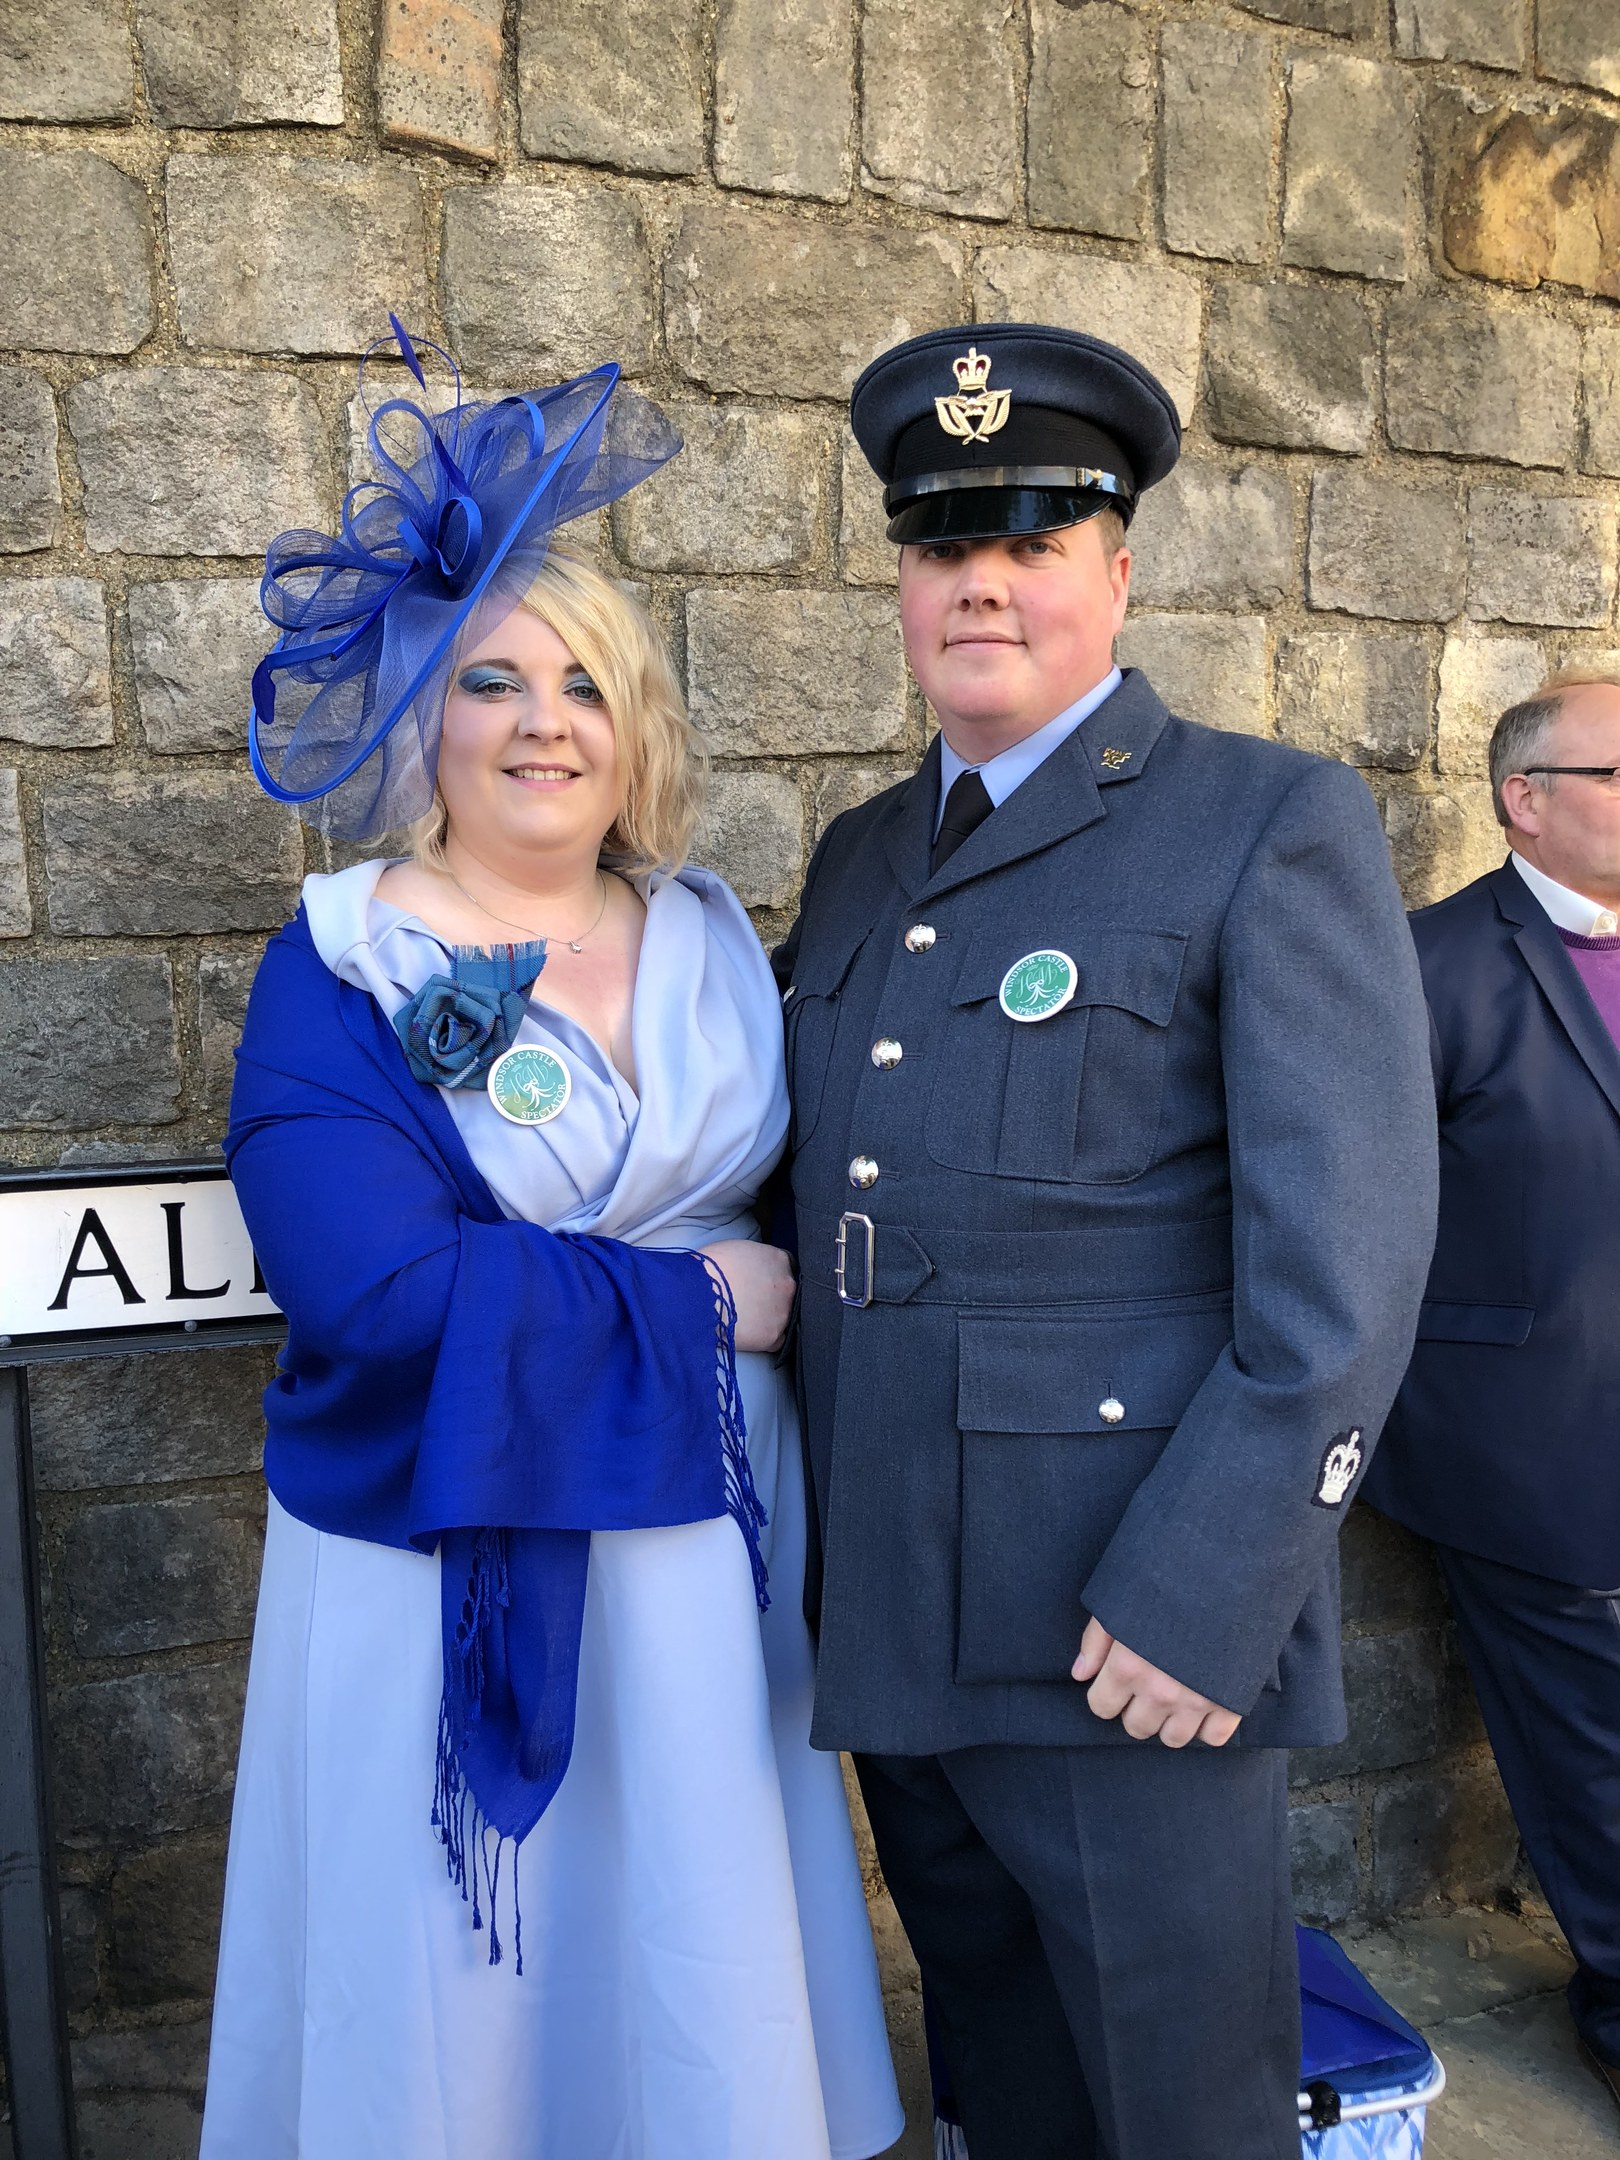 Warrant Officer Scott Ross from Brechin, with his wife Nicola Ross.